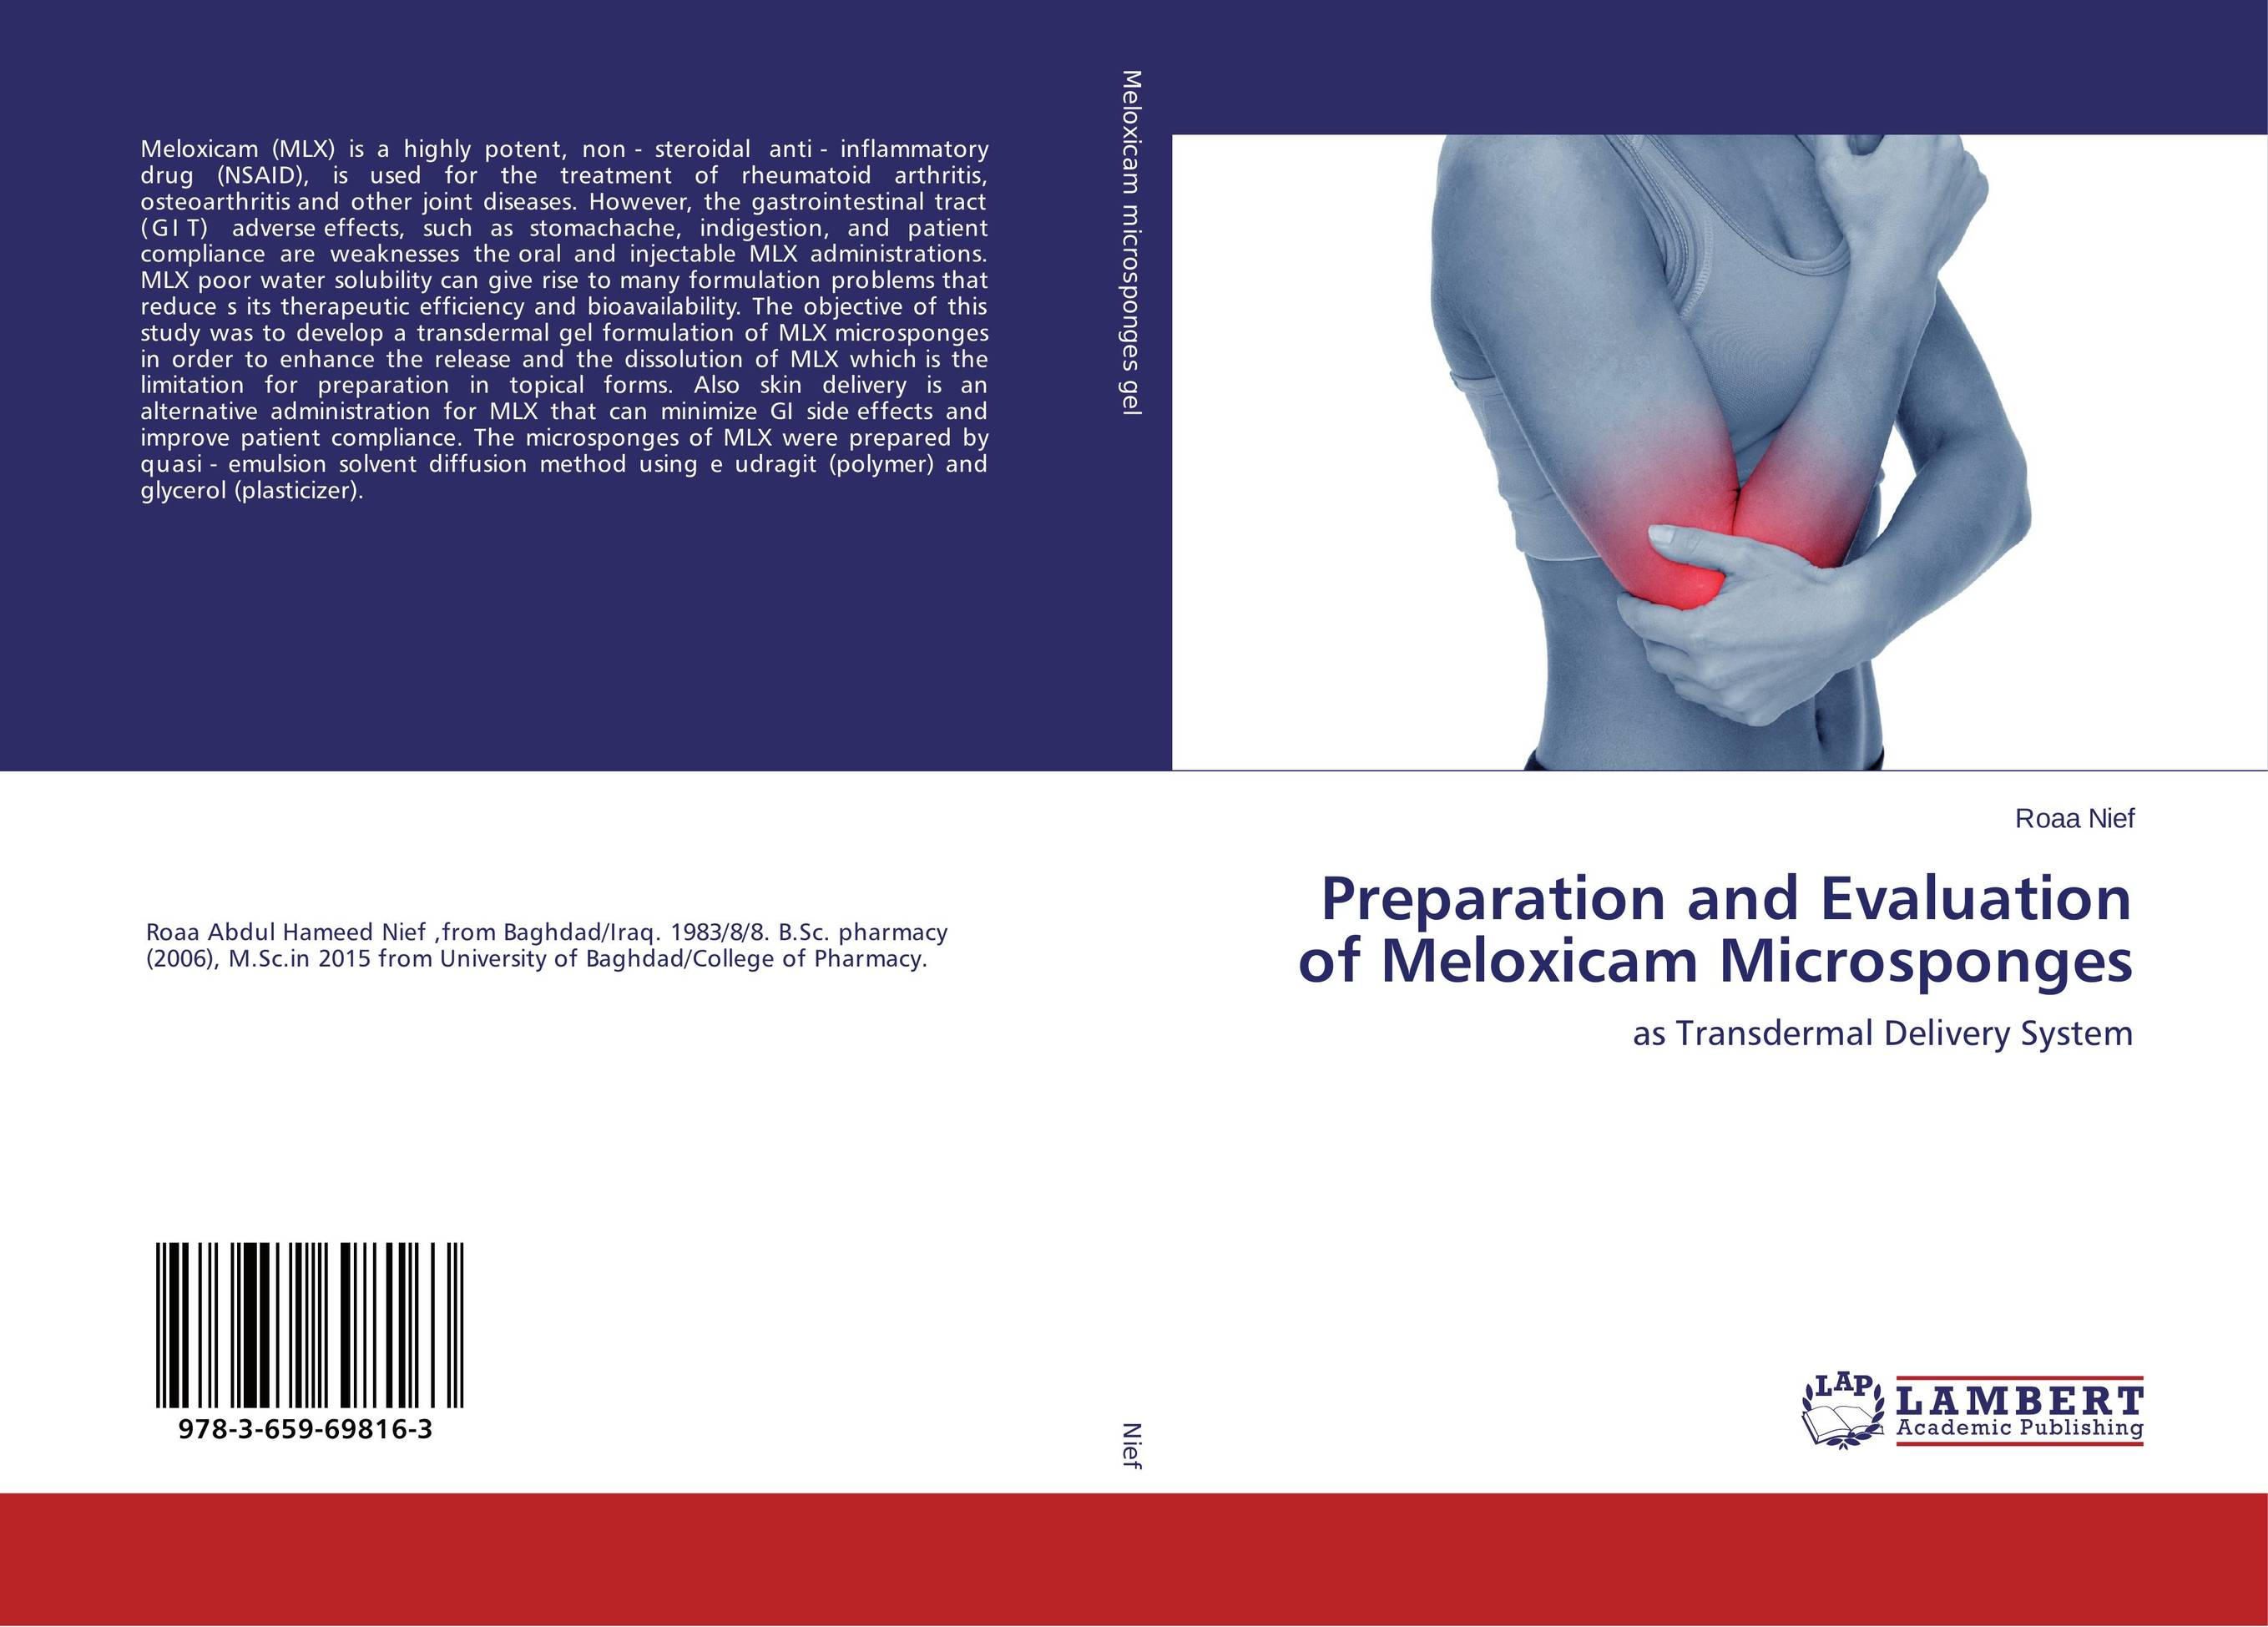 Preparation and Evaluation of Meloxicam Microsponges case history of therapeutic patient manual